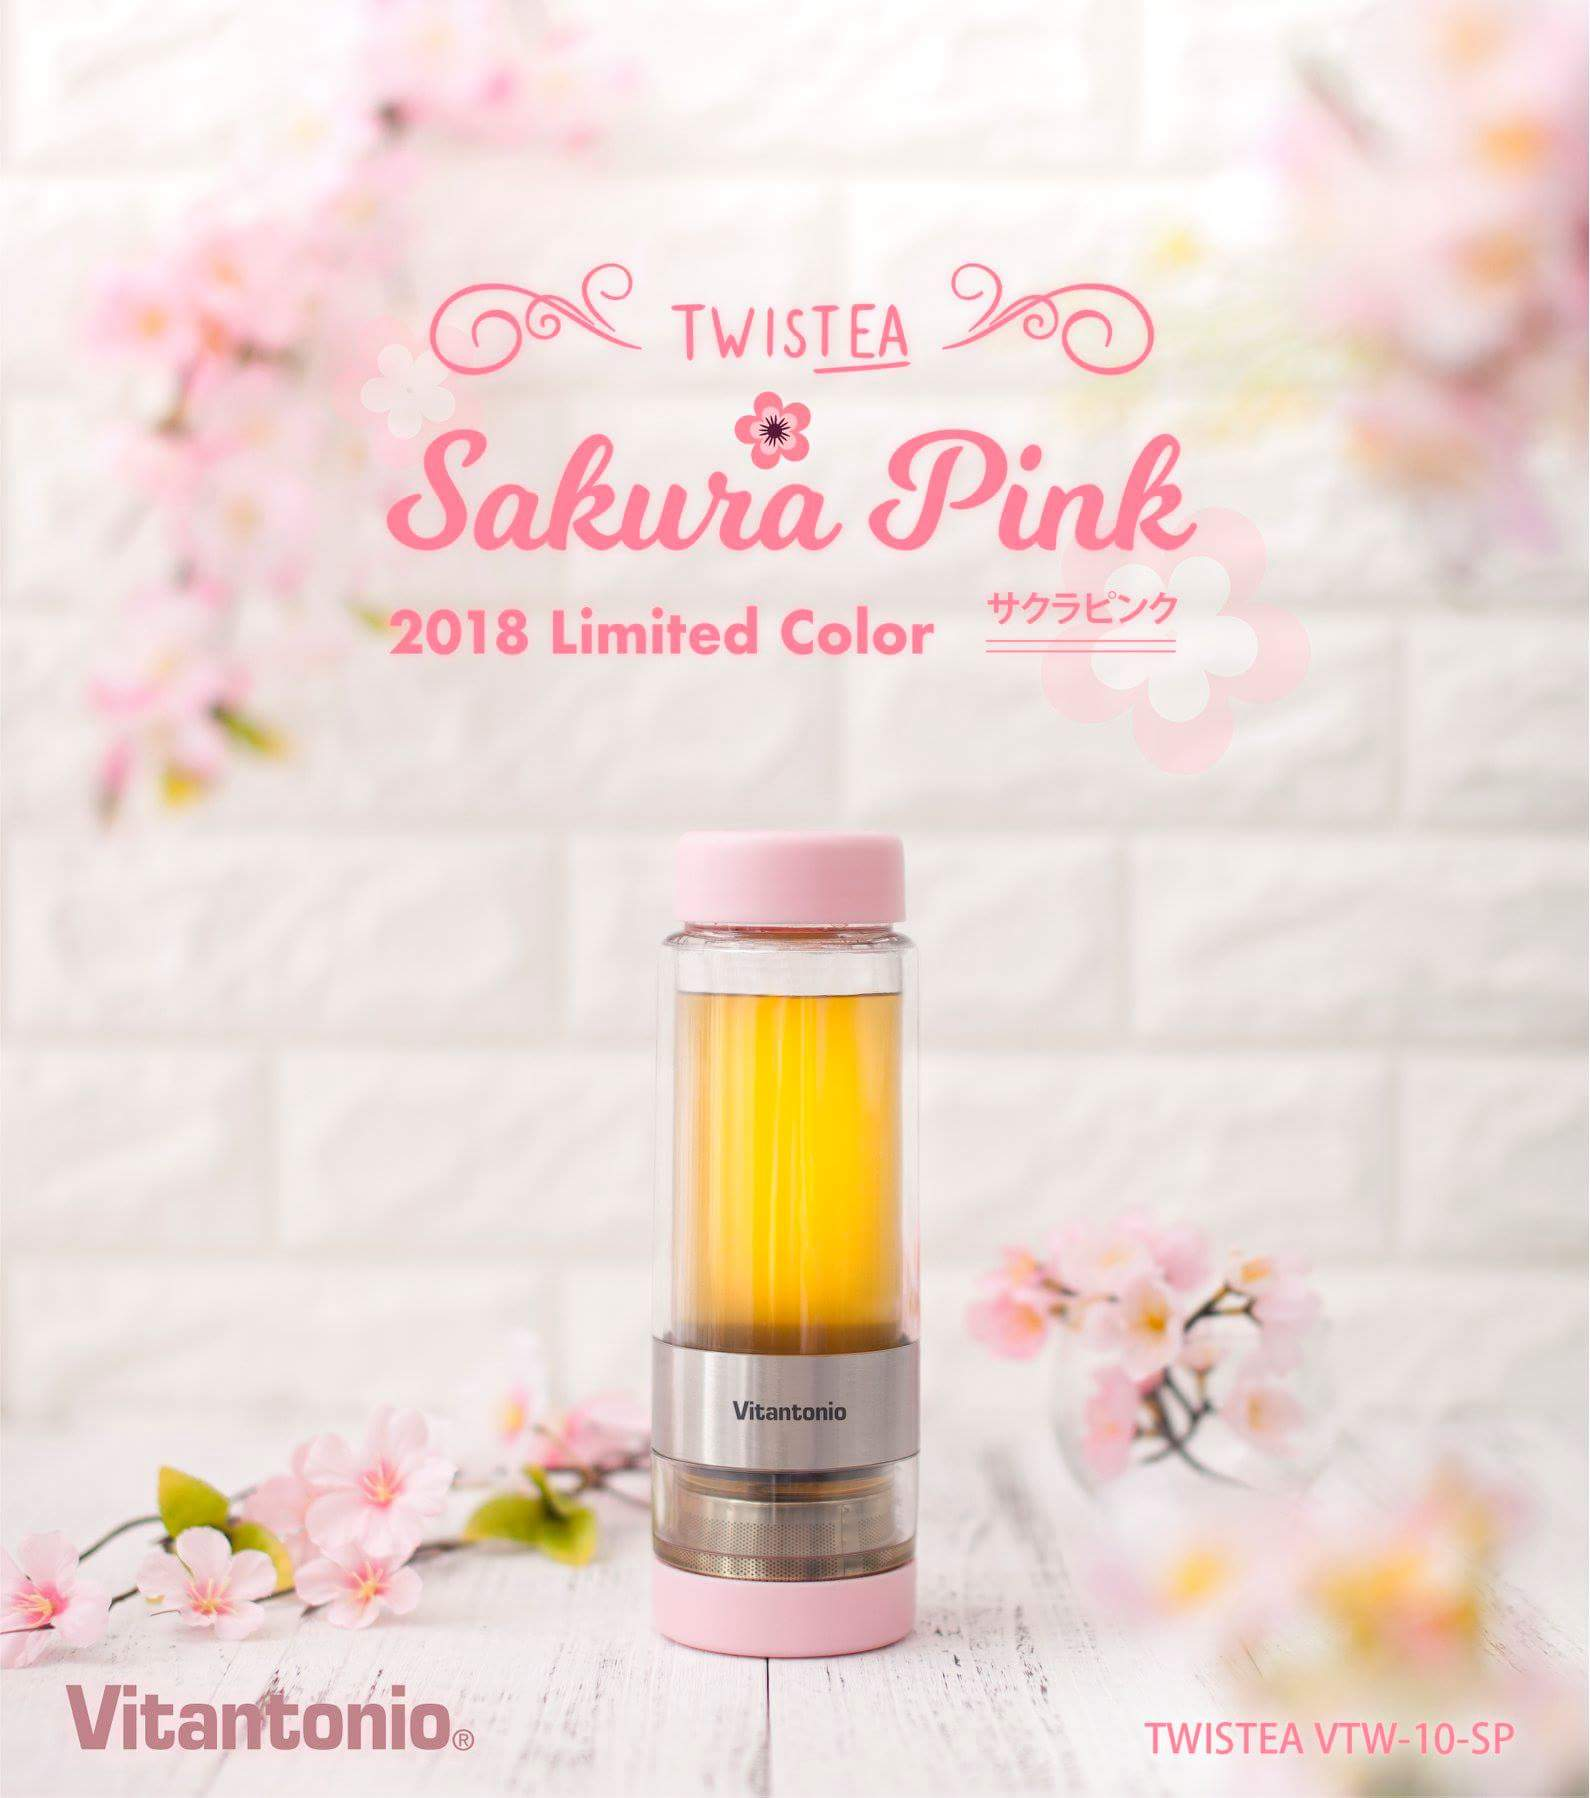 Vitantonio Twistea (Sakura Pink - 2018 Limited Edition)